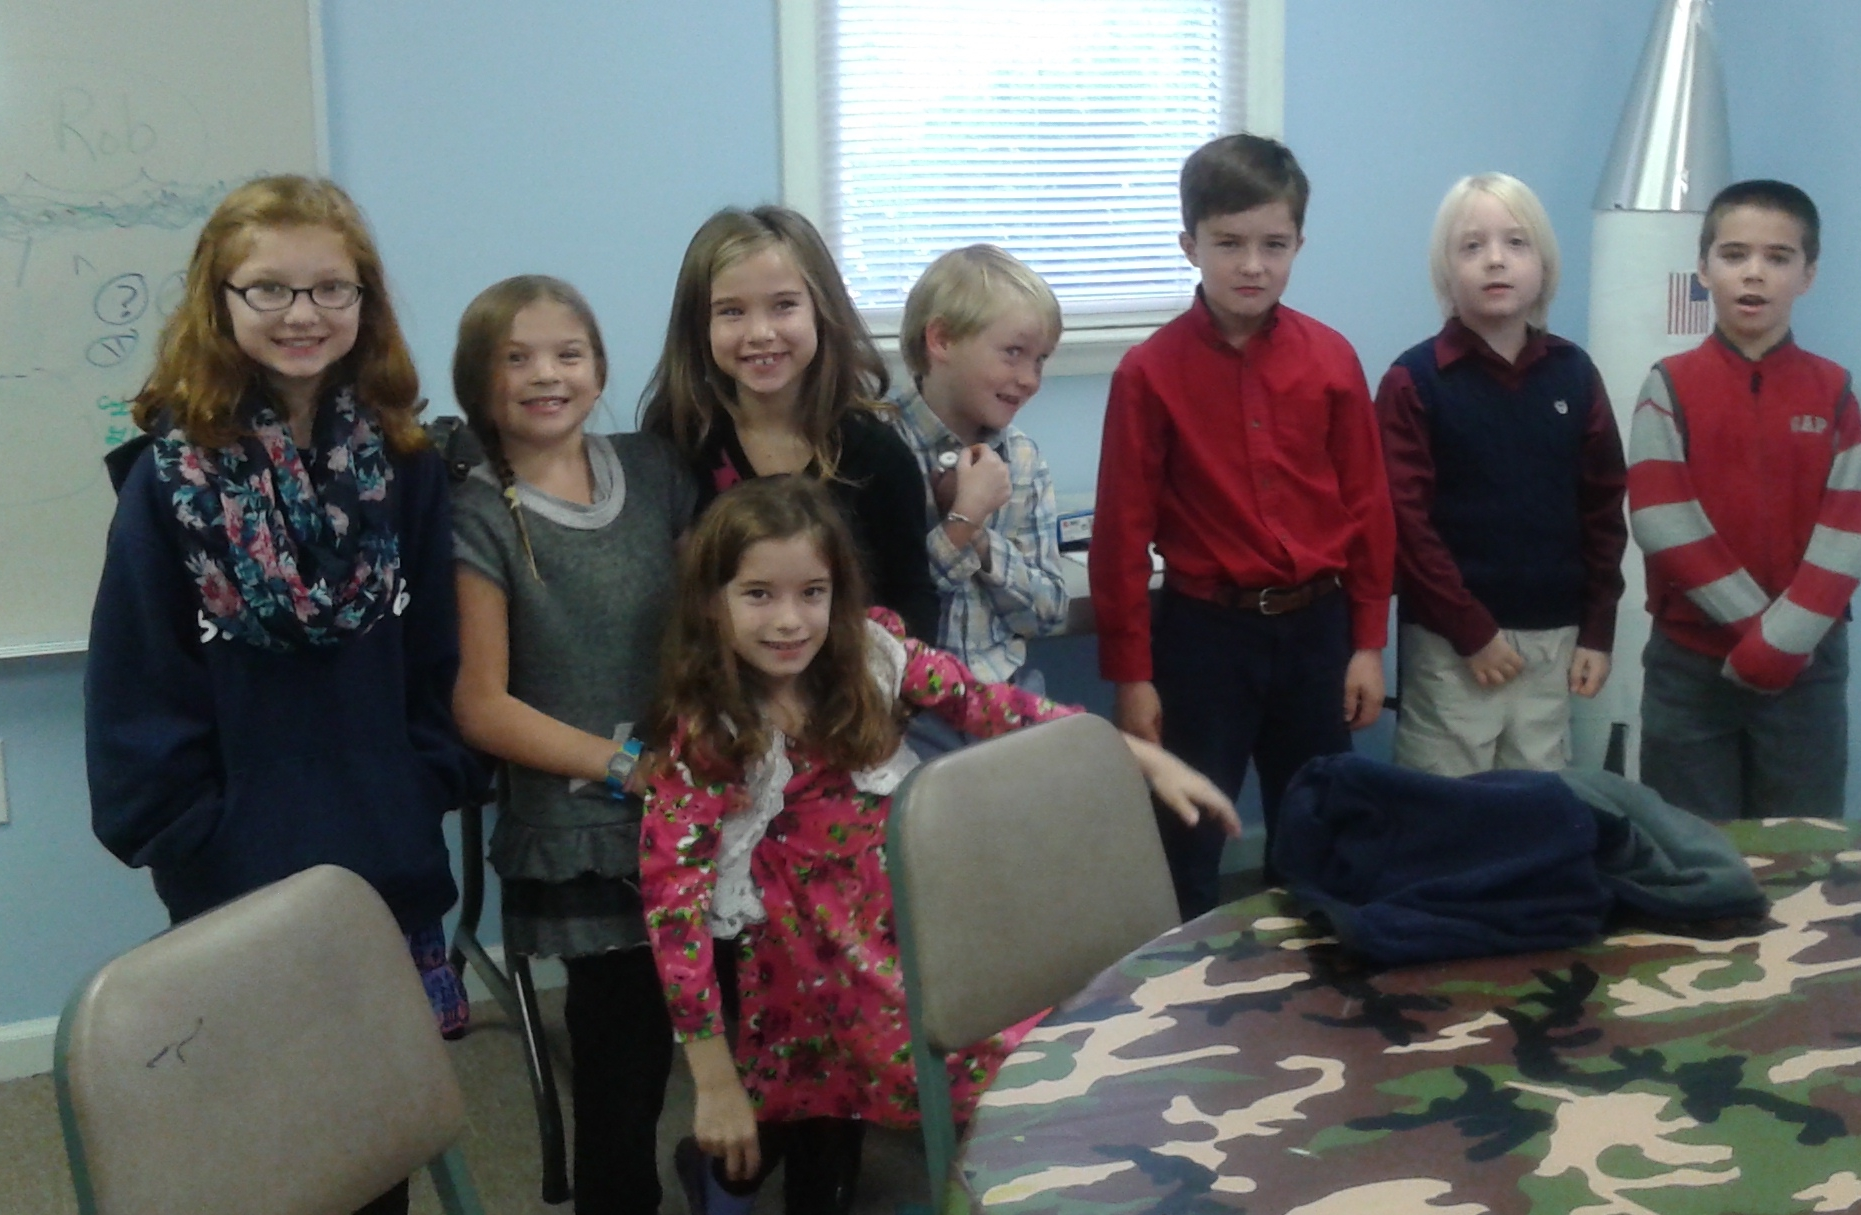 Look at all those 2nd & 3rd graders!